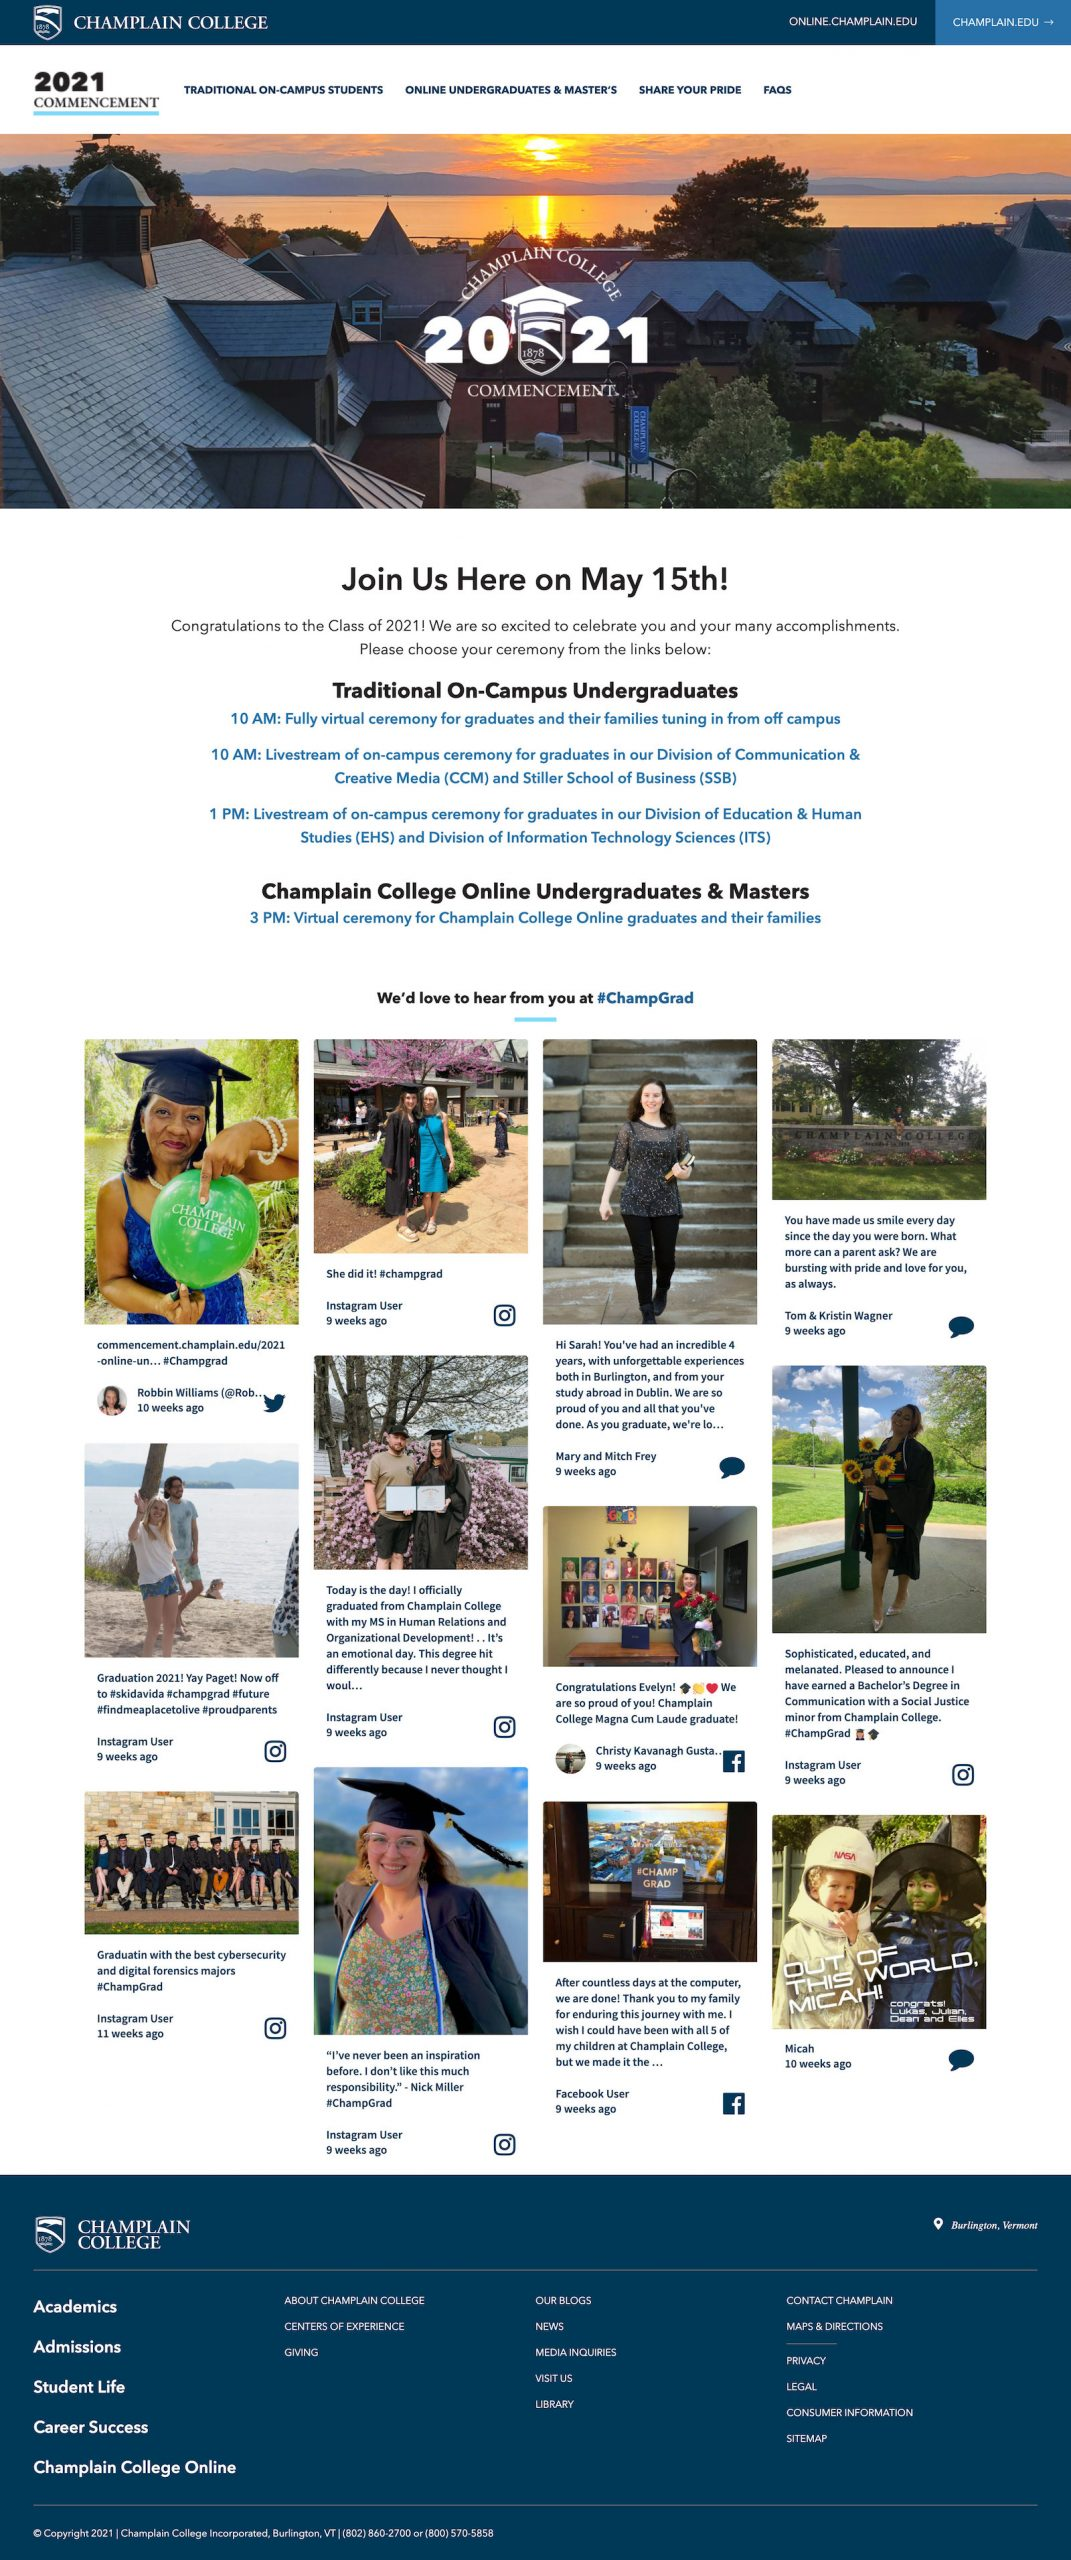 Screenshot of the Champlain College commencement microsite with information for graduates and the #ChampGrad social wall embedded.